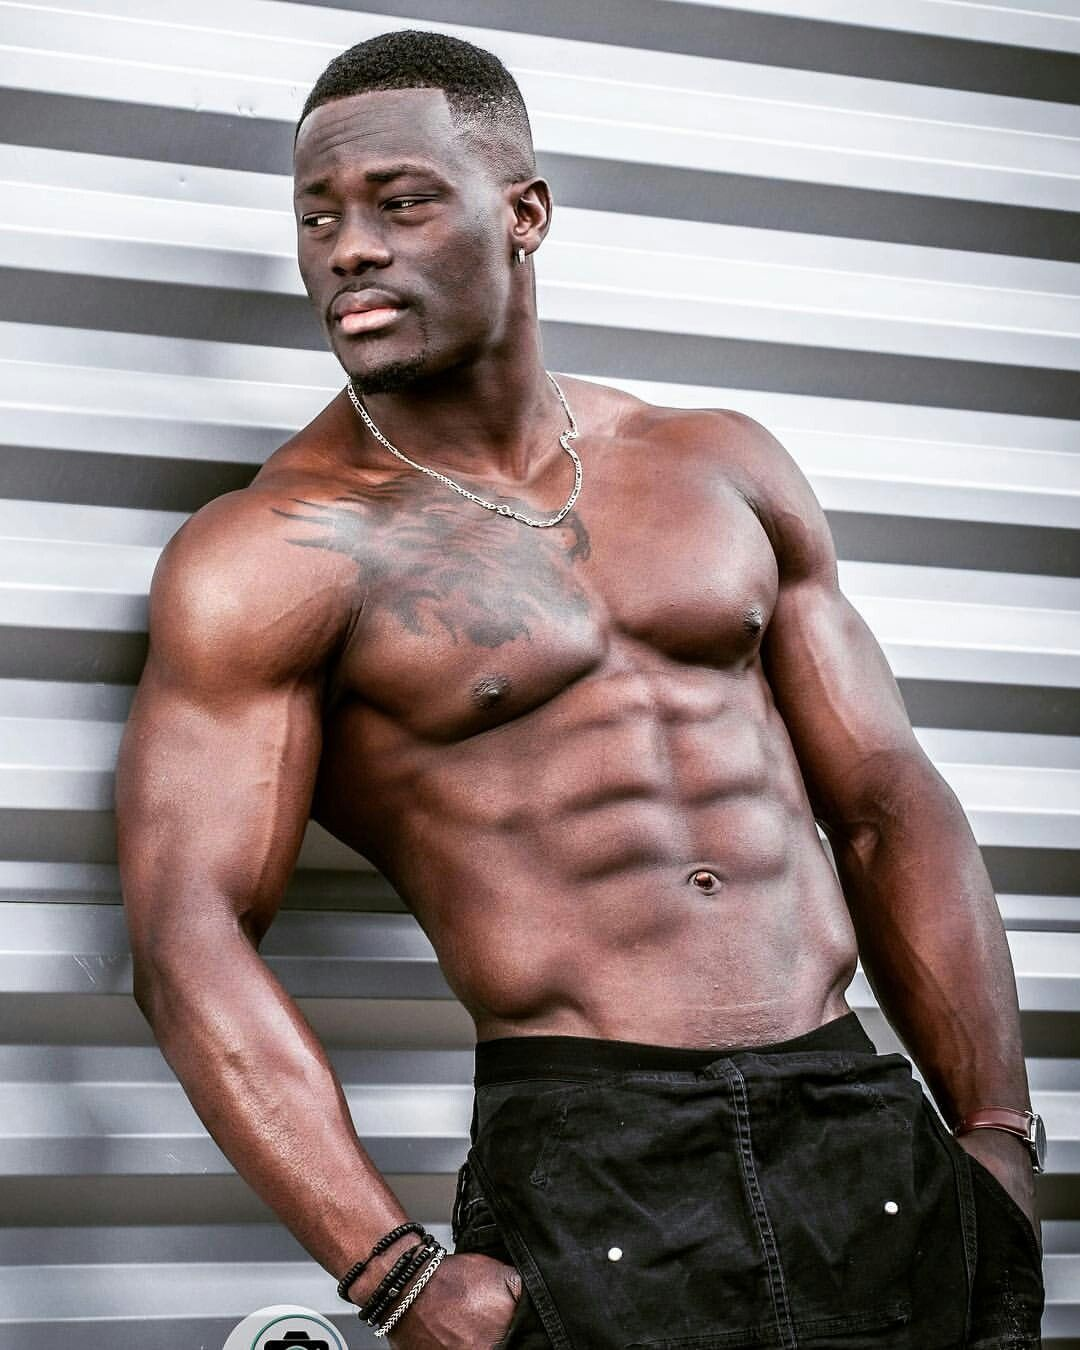 Pin By Uw Ku On Colored Men Iv Gym Pictures Handsome Men